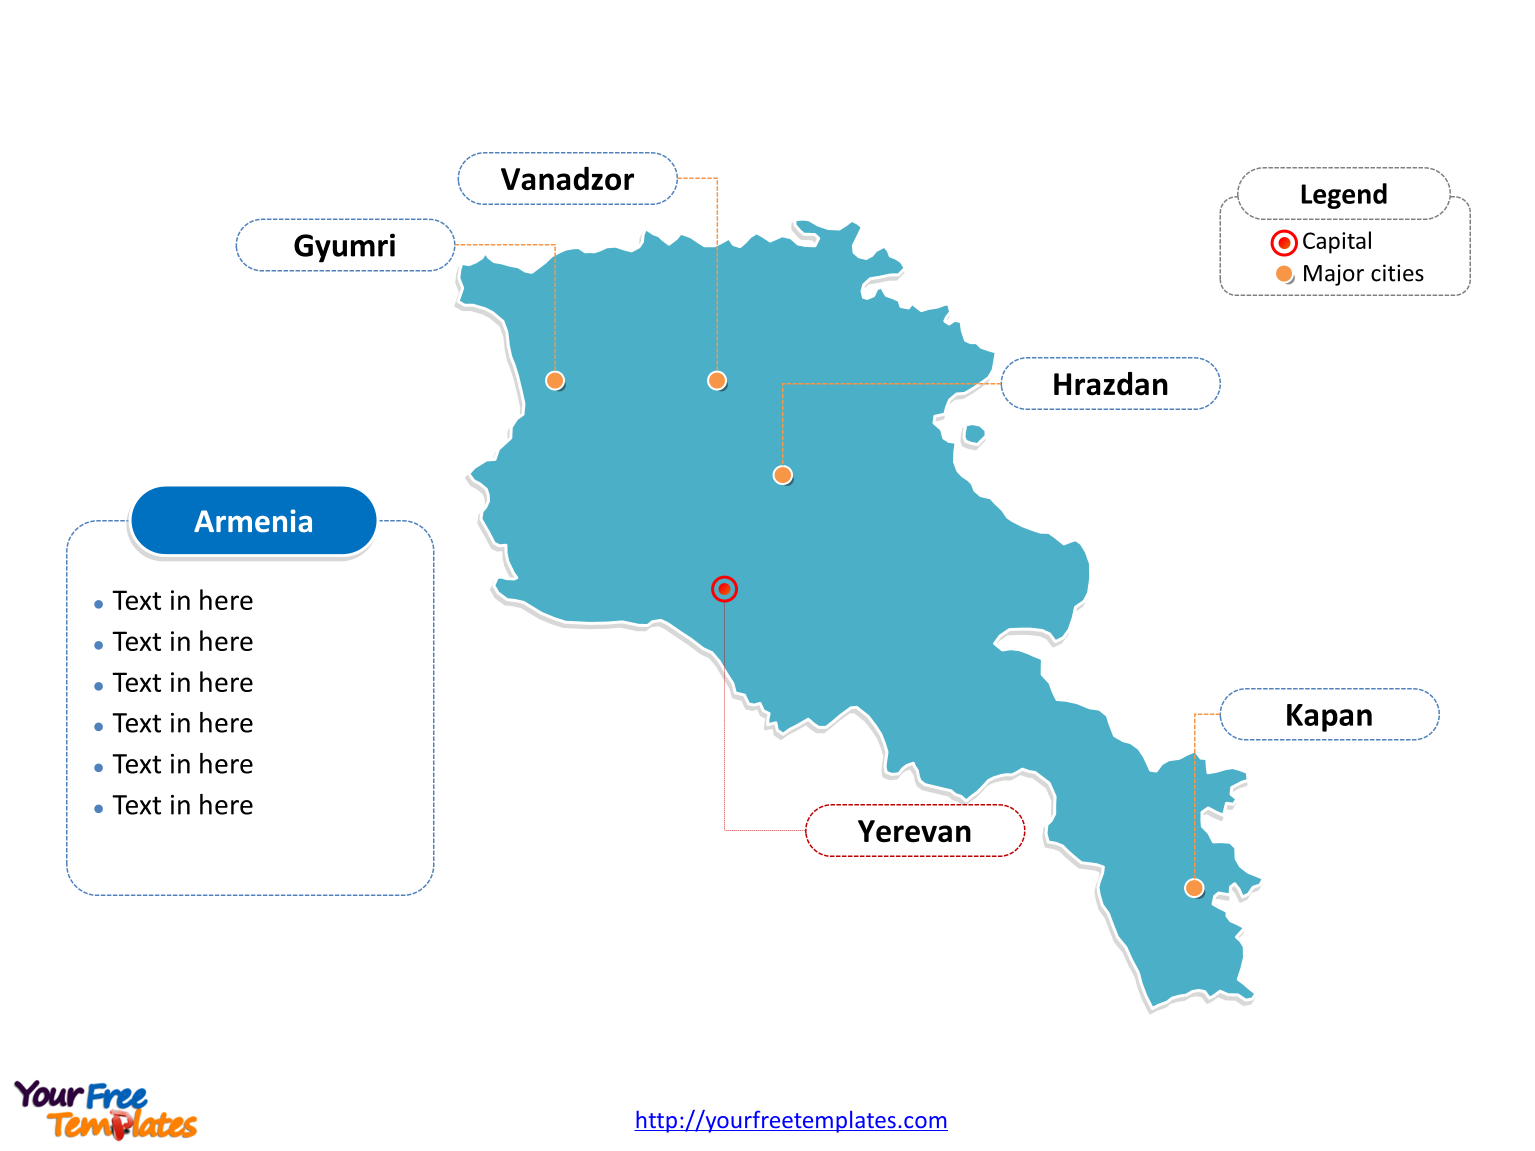 Free Armenia PowerPoint Map Free PowerPoint Templates - Armenia map